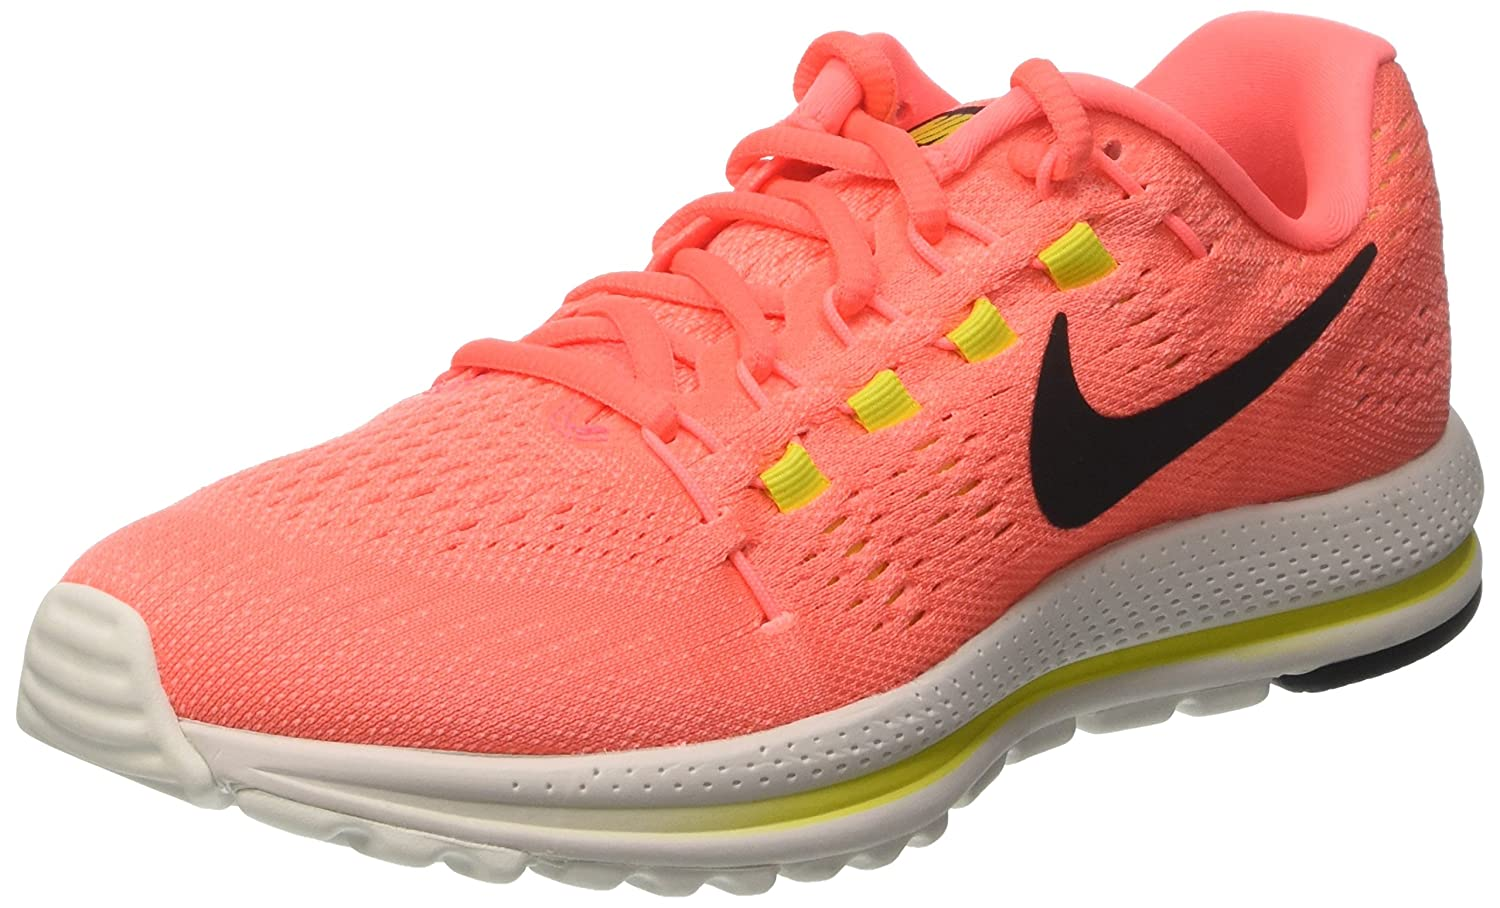 NIKE Men's Air Zoom Vomero 12 Running Shoe B00CLVNCUQ 6.5 M US|Hot Punch/Black/Lava Glow/Electrolime